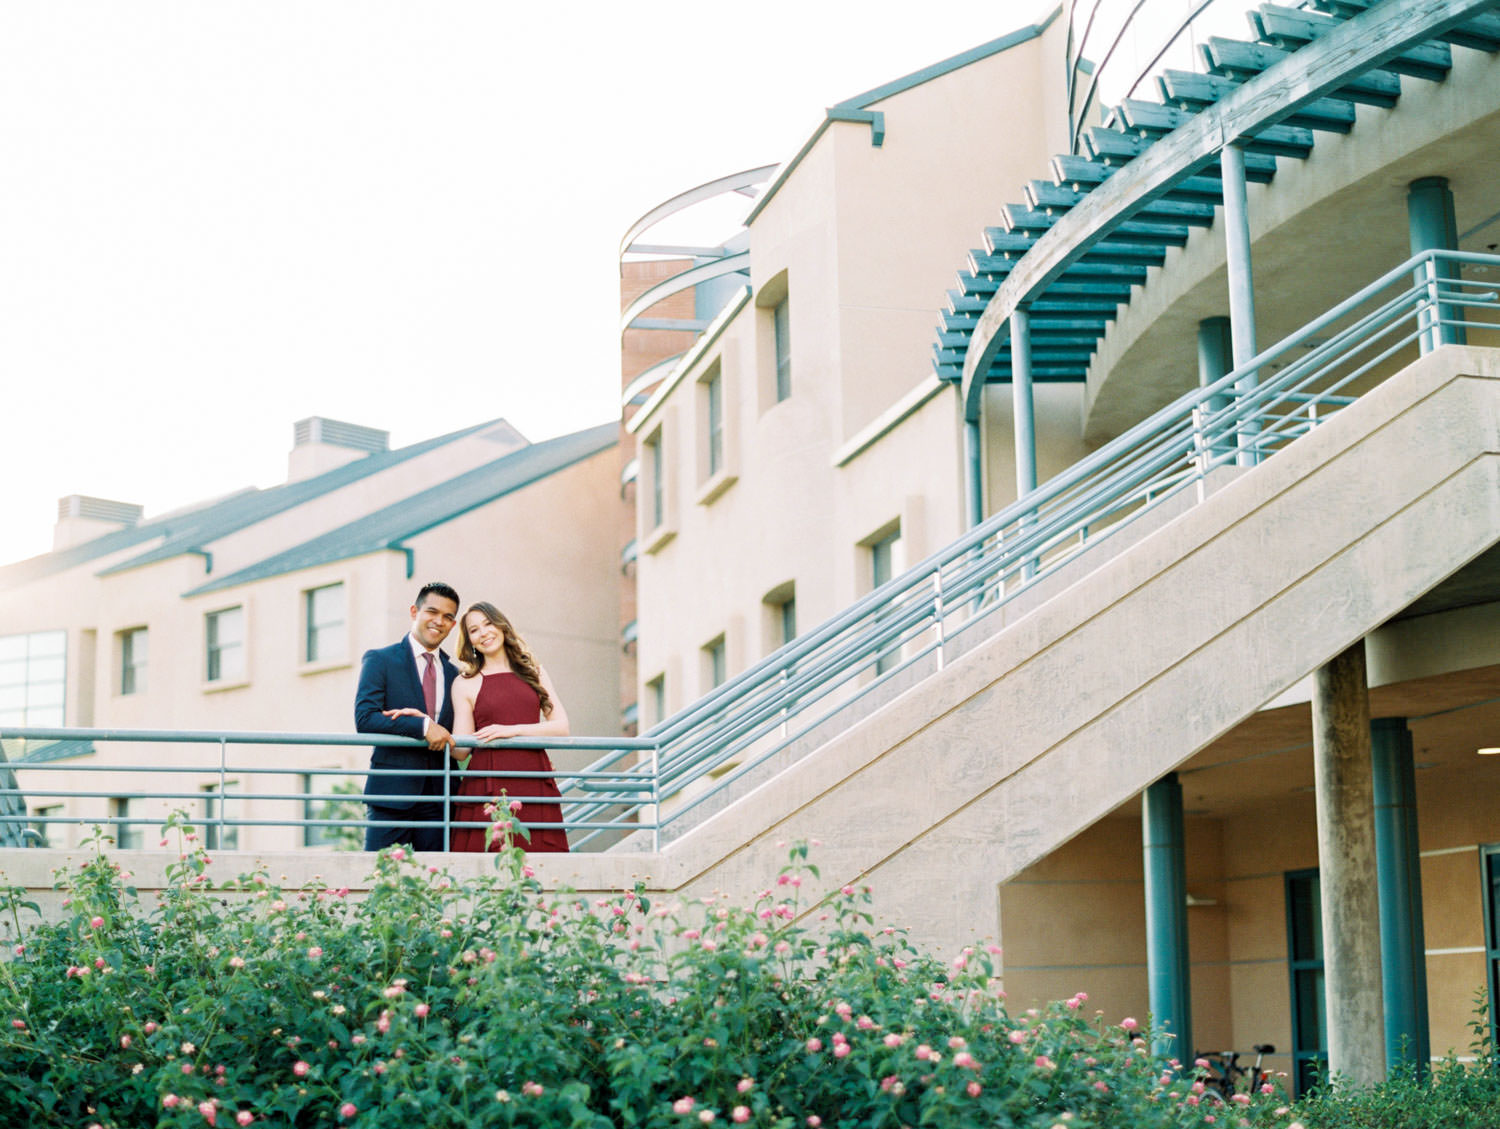 UC Riverside Engagement photos next to the dorm building where the couple met. Bride in long berry marsala dress and groom in navy suit. Film photographer Cavin Elizabeth Photography.